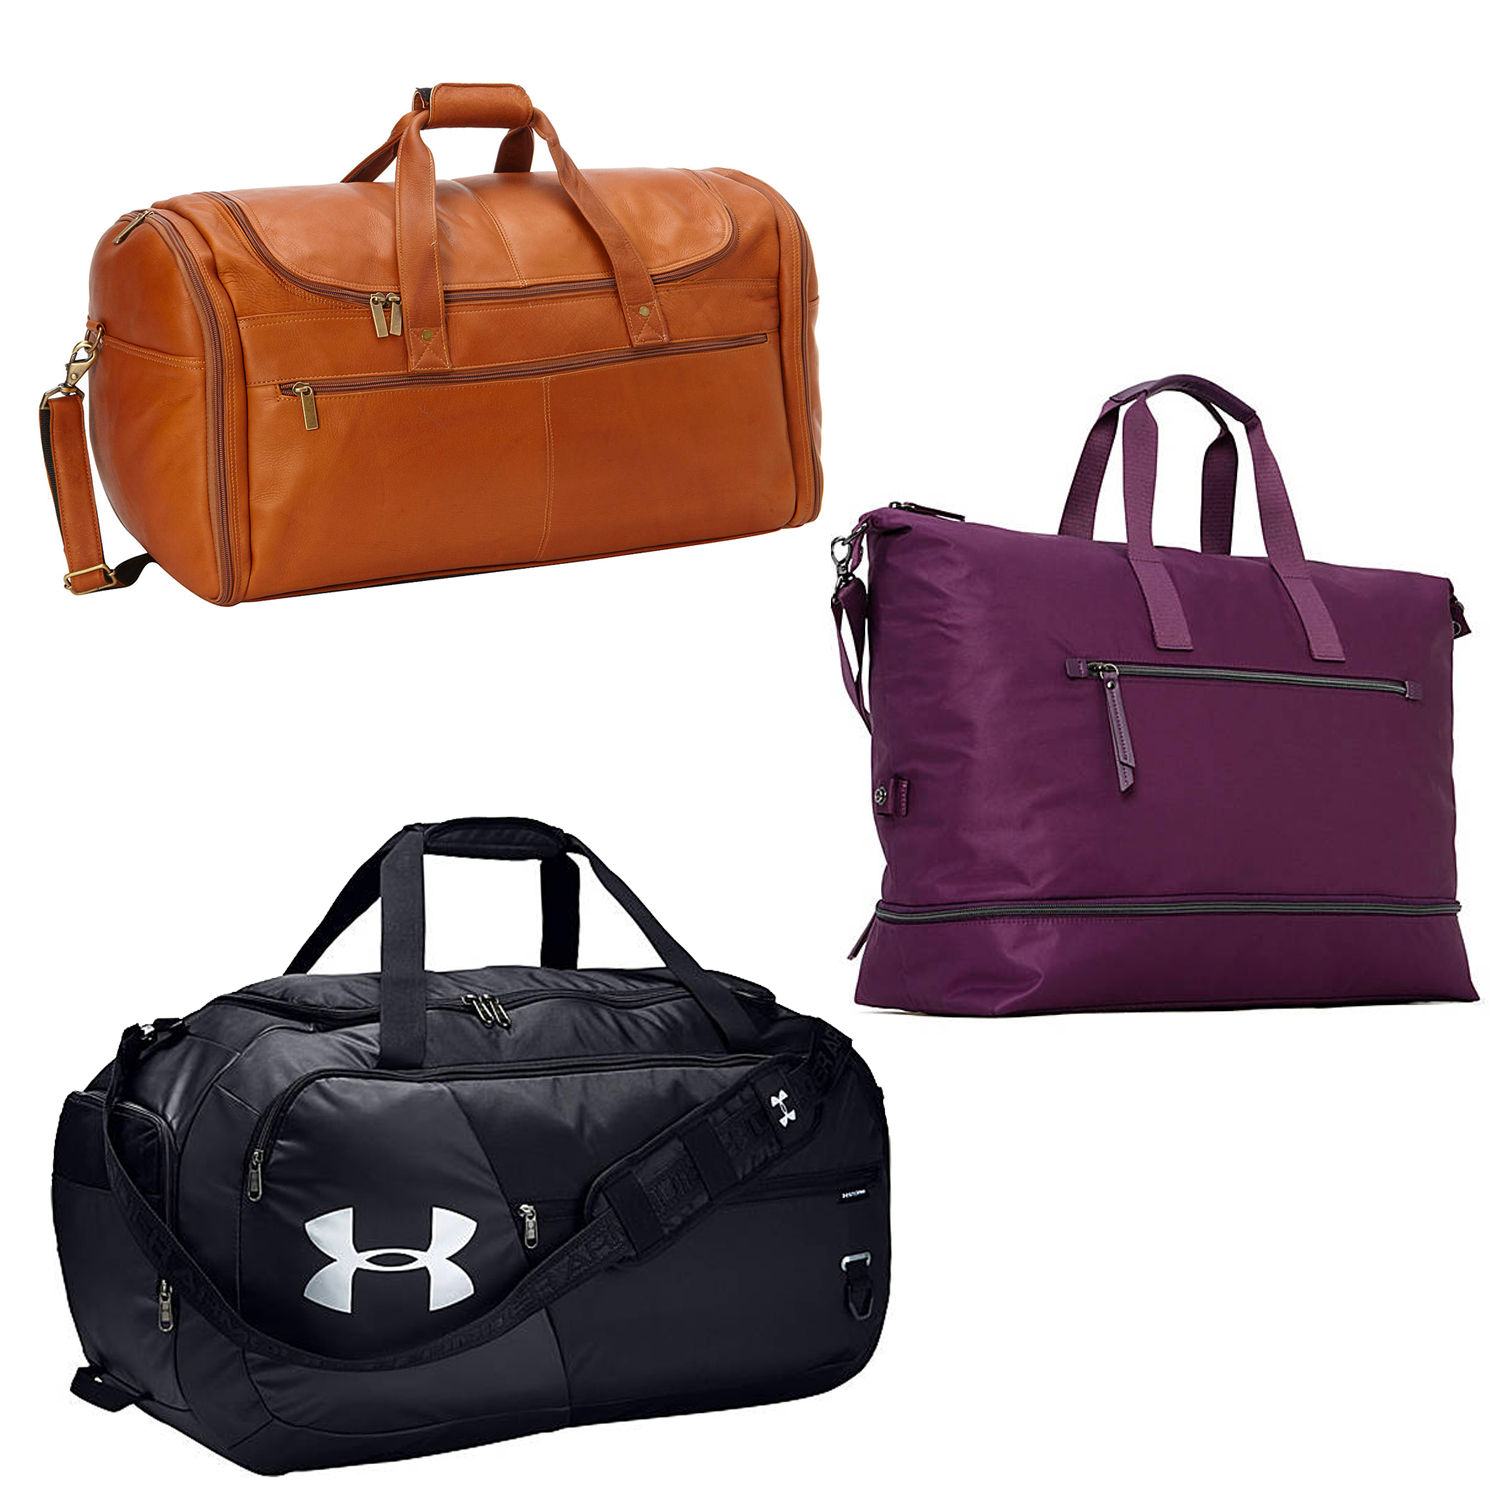 Best Duffle Bag Deals